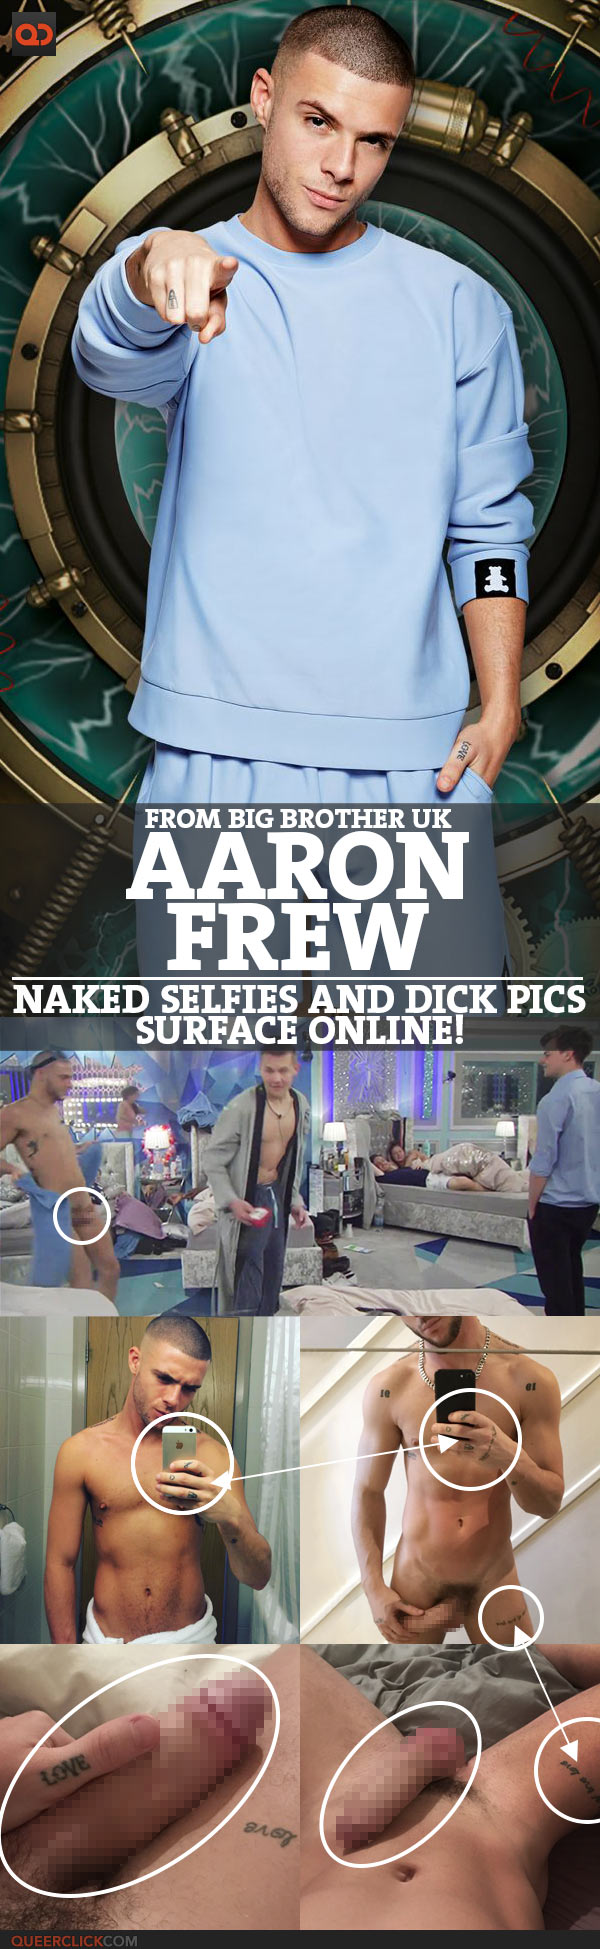 Aaron Frew, From Big Brother UK, Naked Selfies And Dick Pics Surface Online!